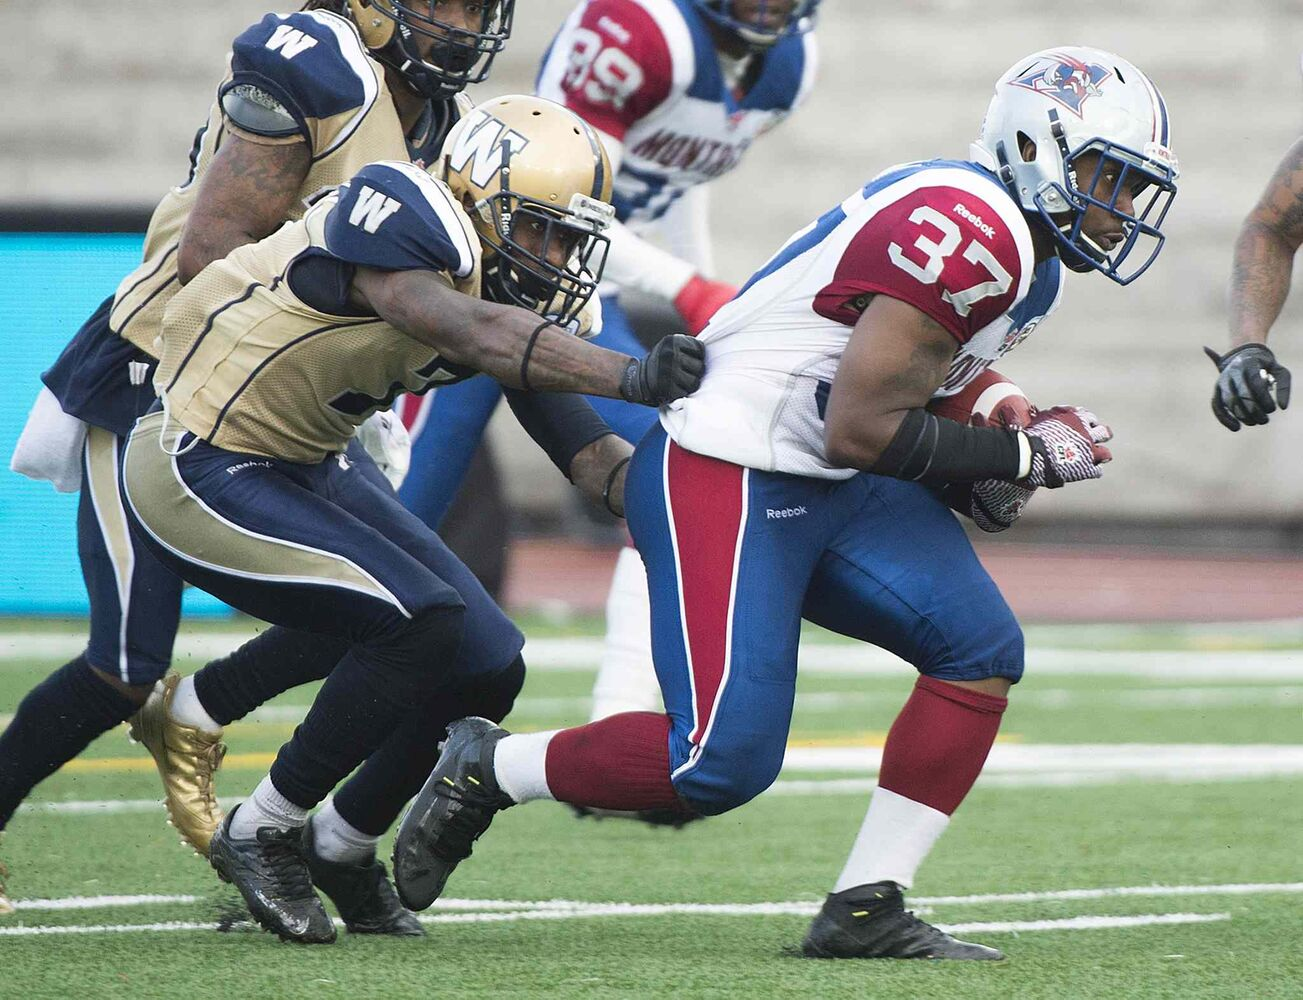 Winnipeg Blue Bombers' Demond Washington, left, grabs Montreal Alouettes' Tyrell Sutton during second half CFL football action in Montreal Monday. (Graham Hughes / The Canadian Press)